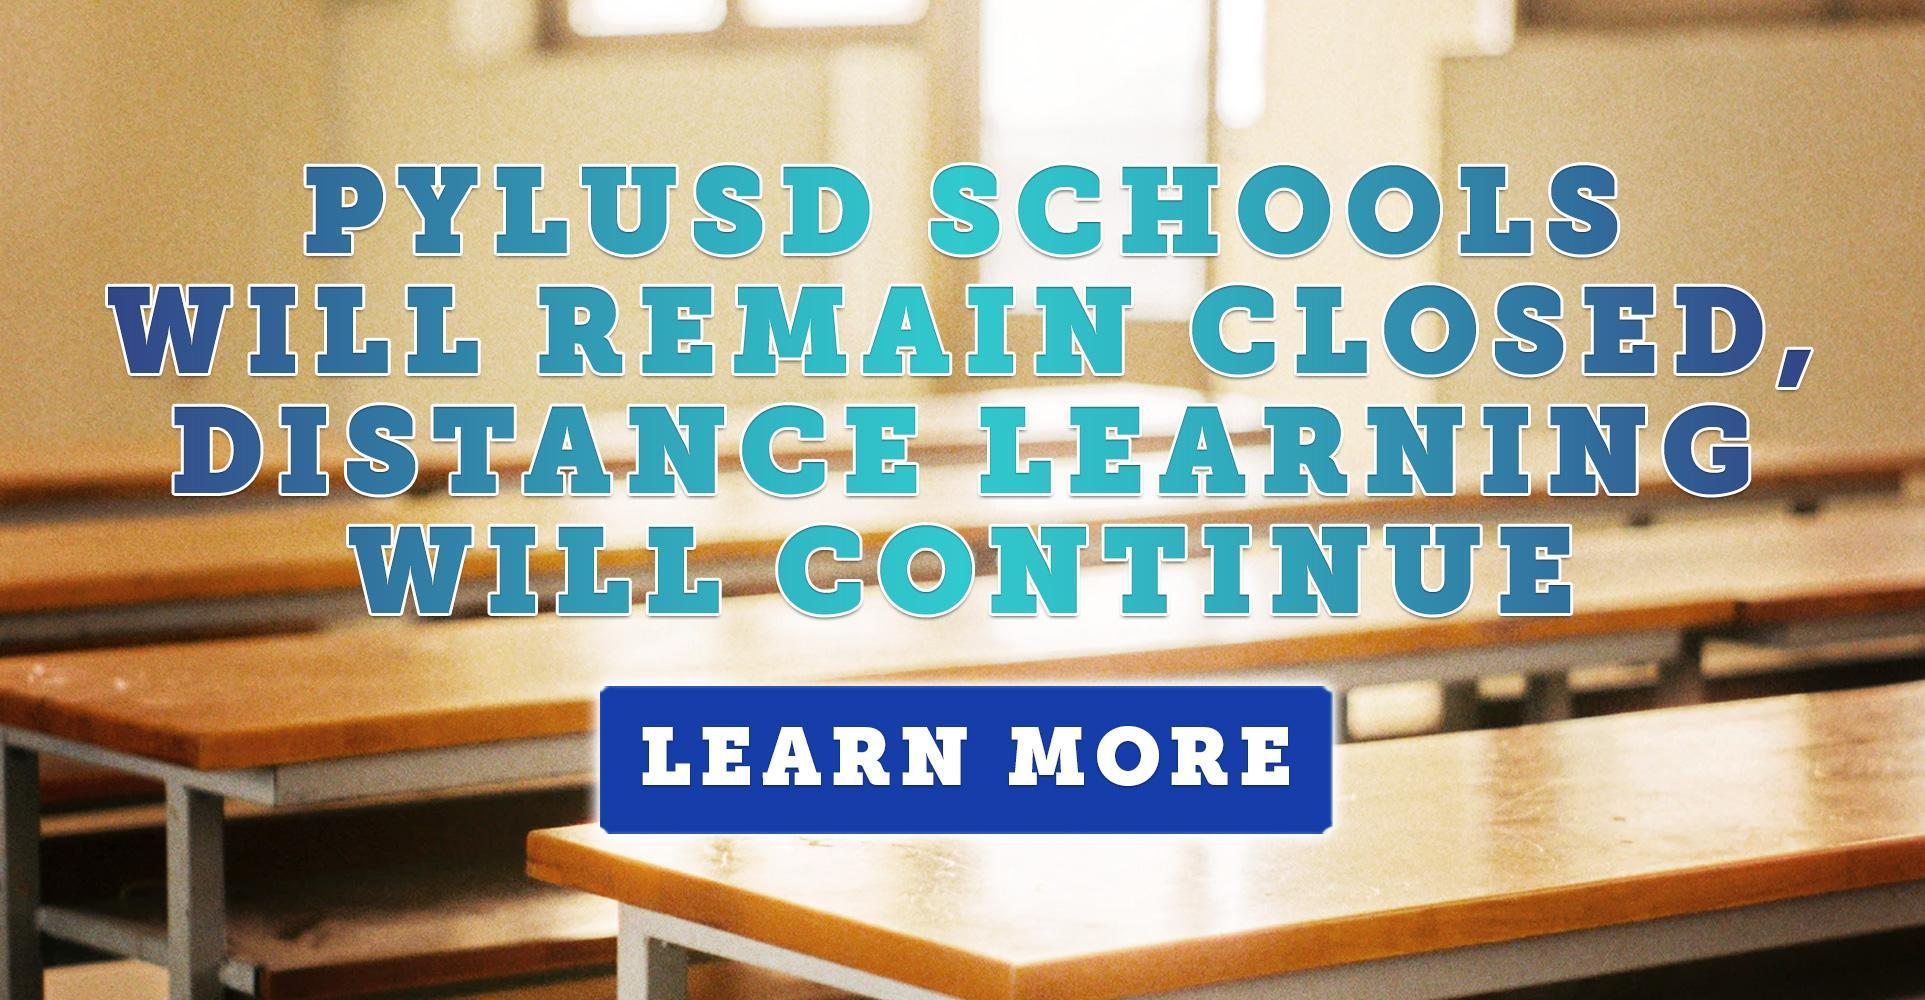 Update: Schools Will Remain Closed, Distance Learning Will Continue